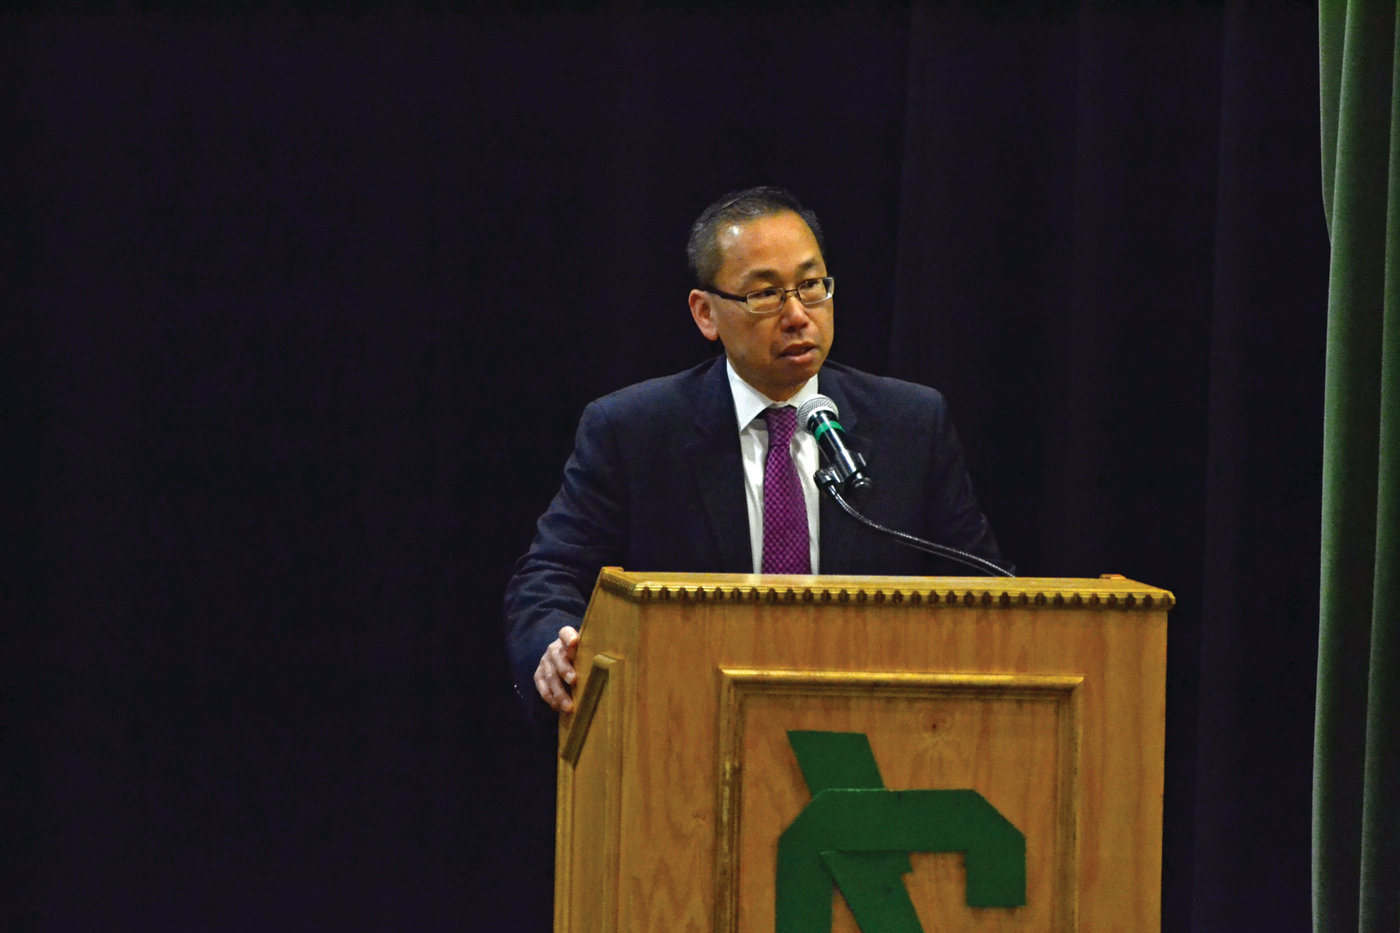 SHARING HIS STORY: Cranston mayor Allan Fung told students at Cranston East a painful story from his past, which involved a fatal traffic accident when Fung was just 18 years old.